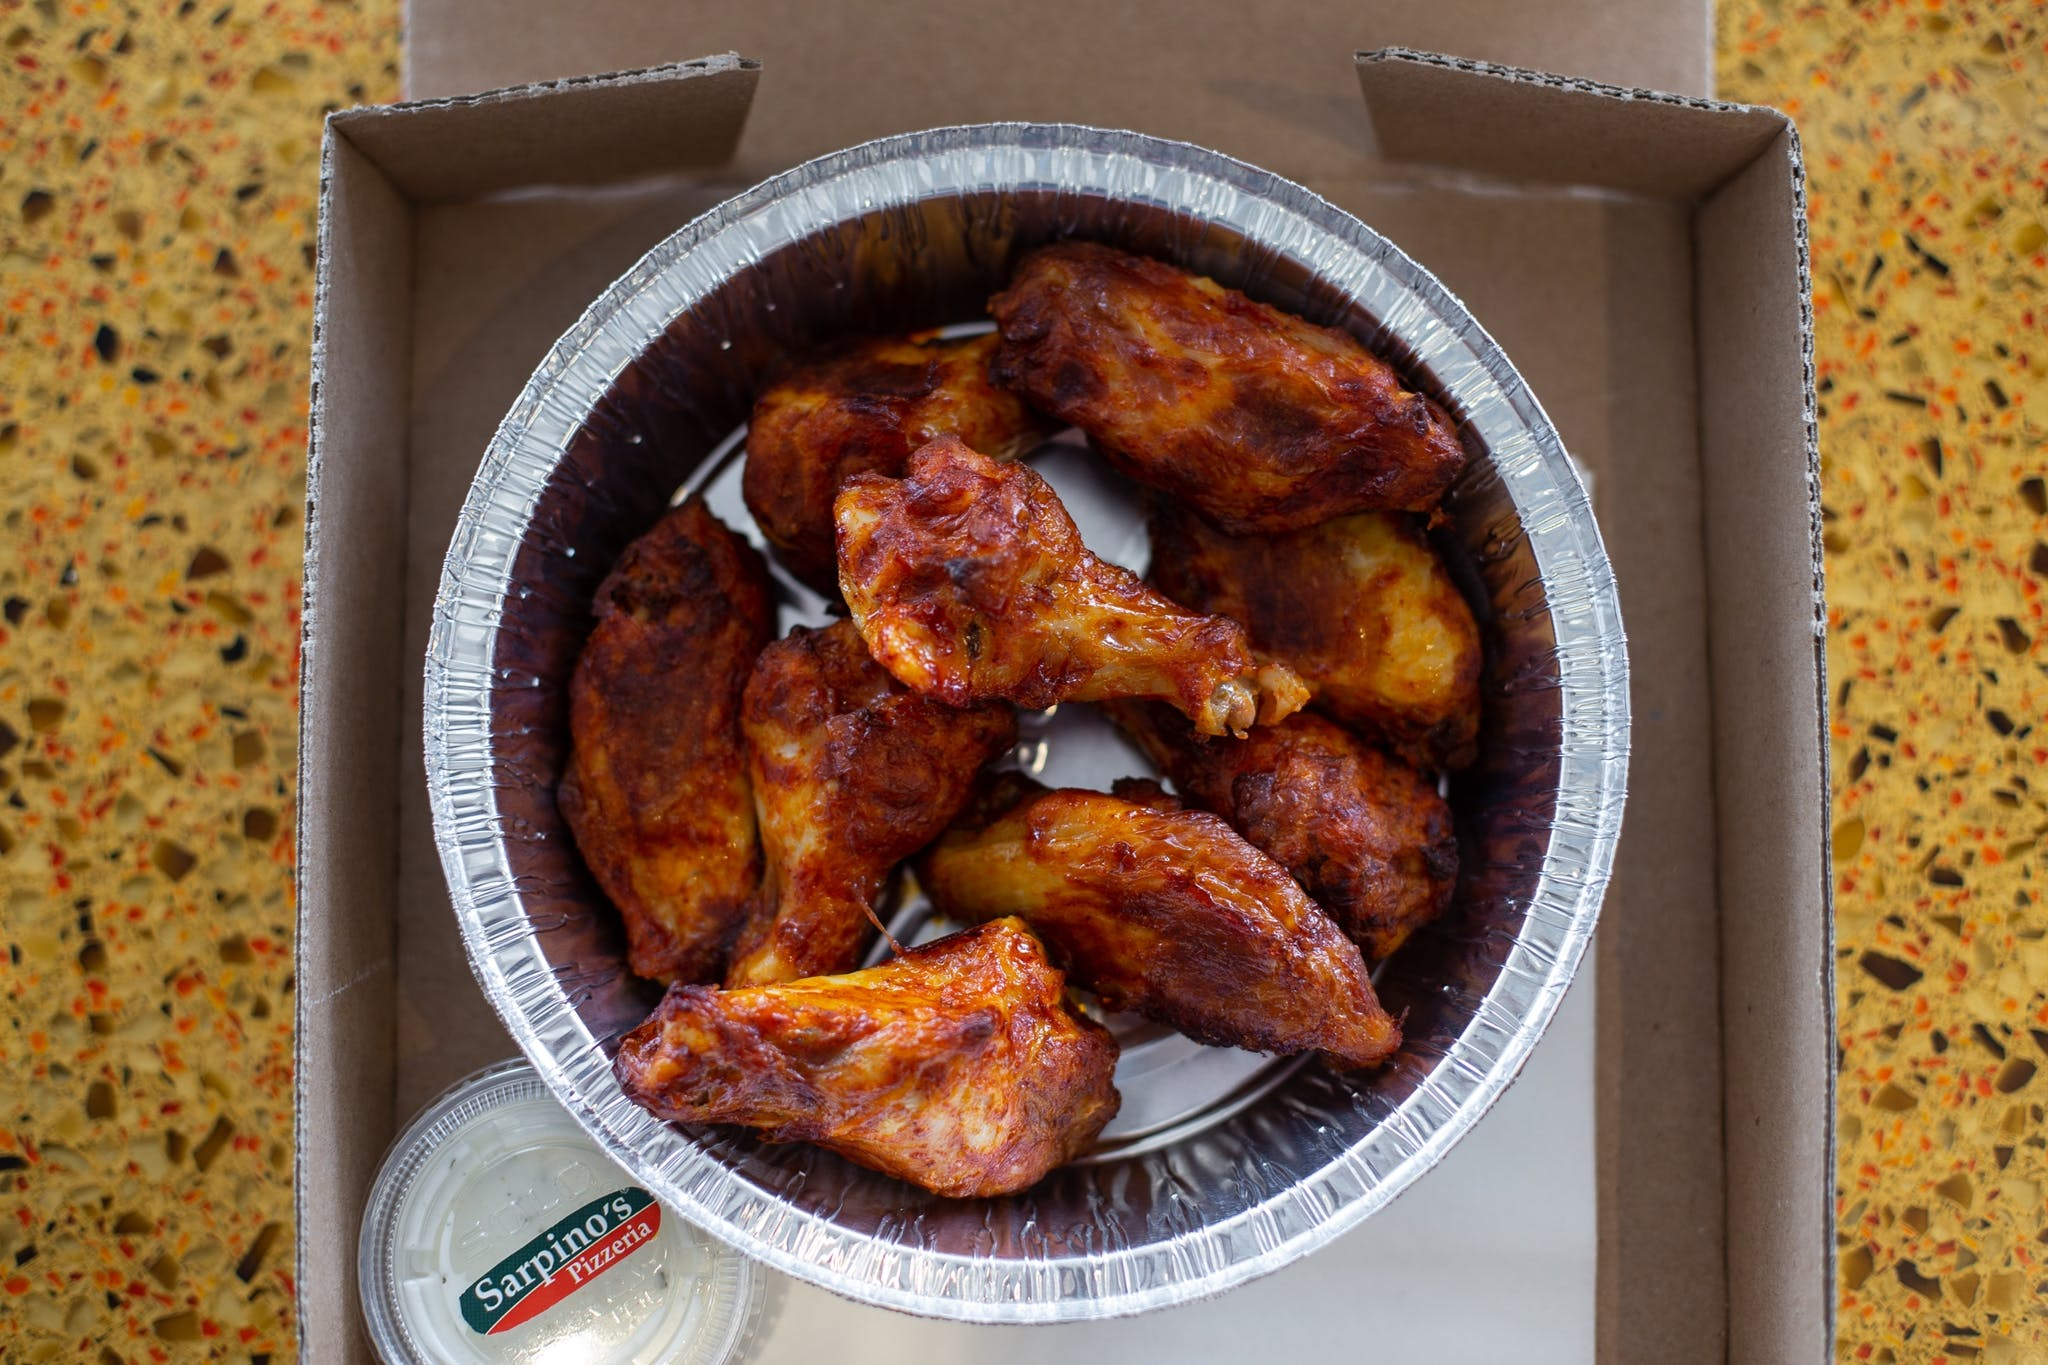 Hot'n Spicy Buffalo Chicken Wings - 1 lb. from Sarpino's Pizzeria - Washington Ave. in Minneapolis, MN